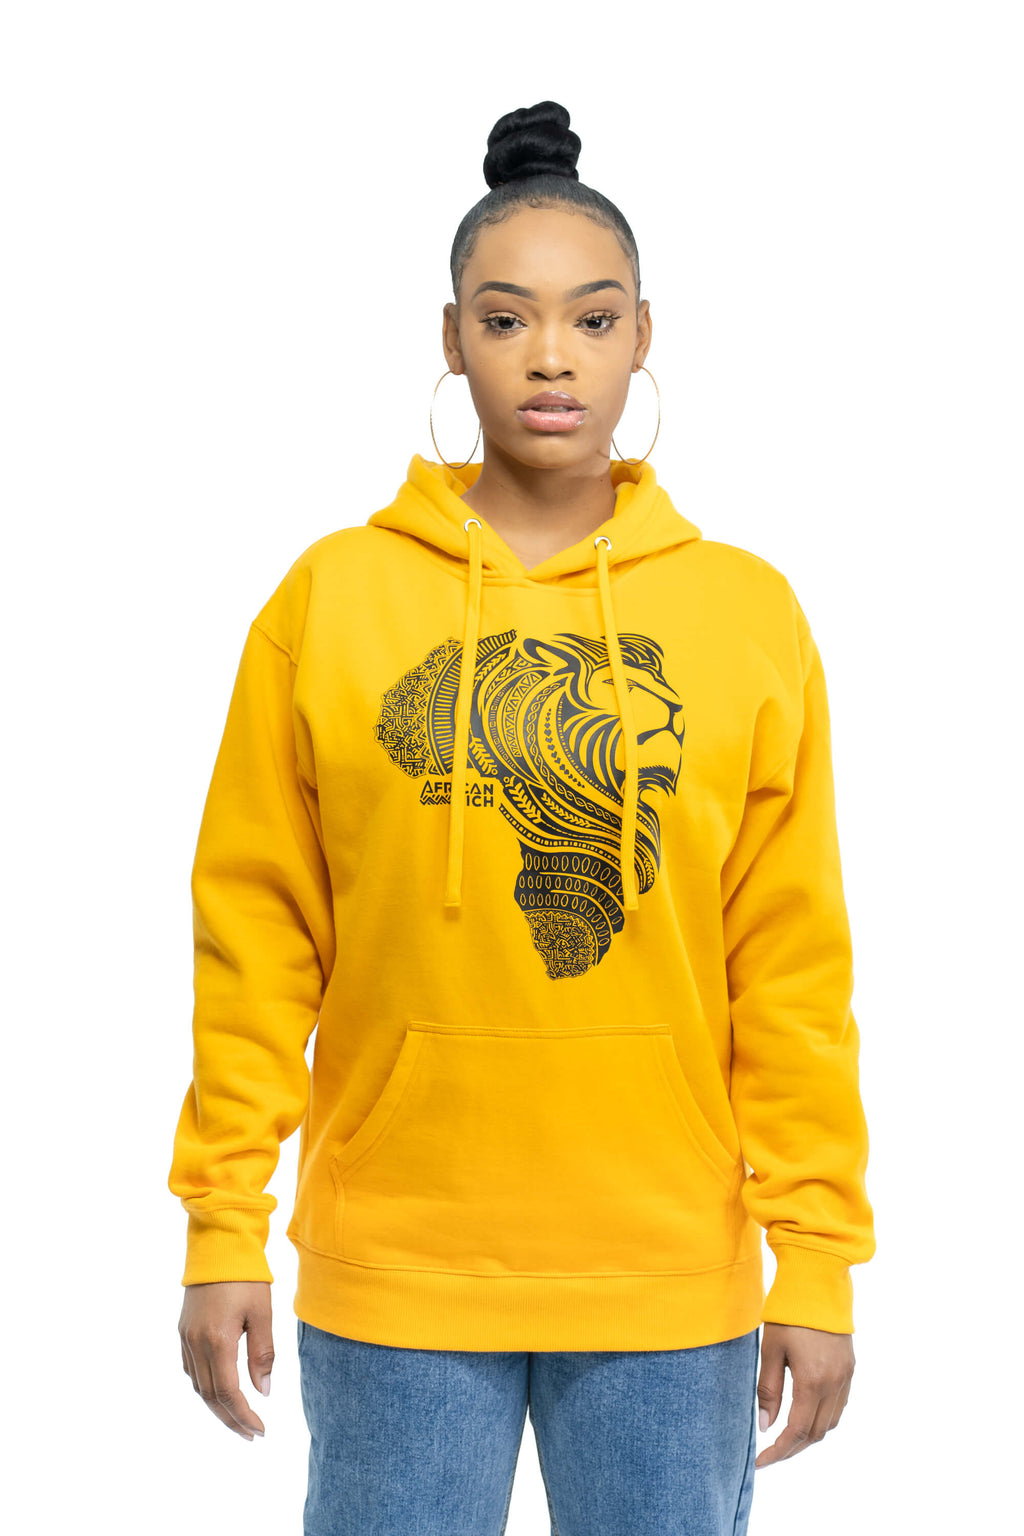 Gold Loopback Hooded Sweatshirt